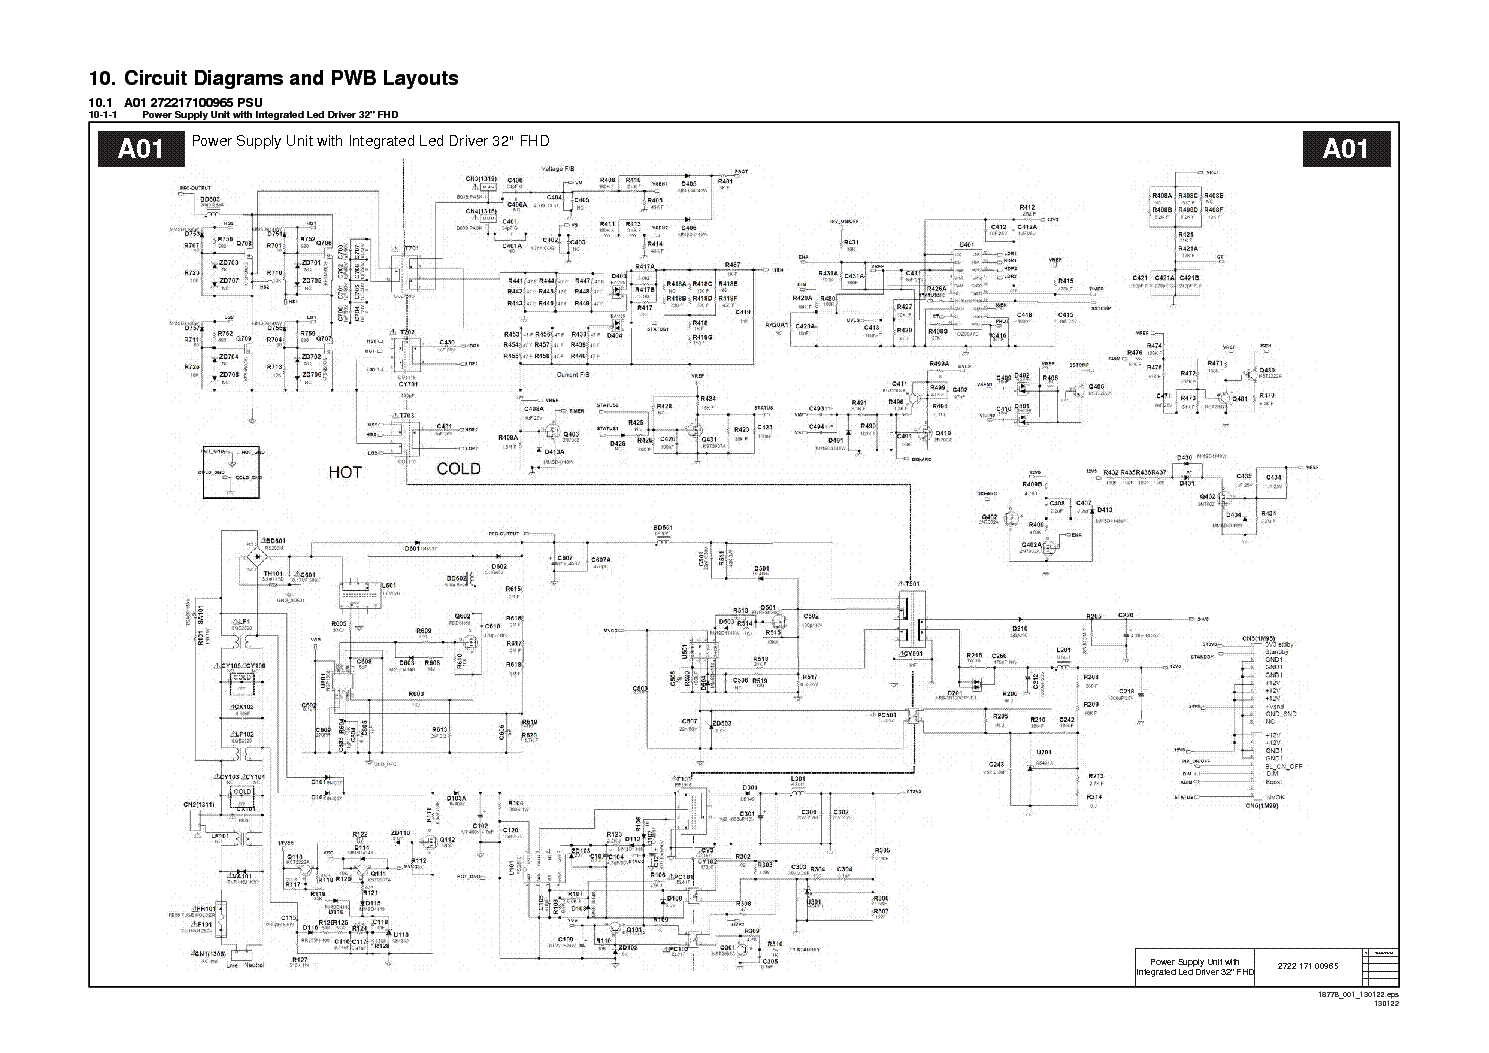 Philips Plhc P981a Psu Sch Service Manual Download Schematics Phillips Drivers Wiring Diagram Led 1st Page